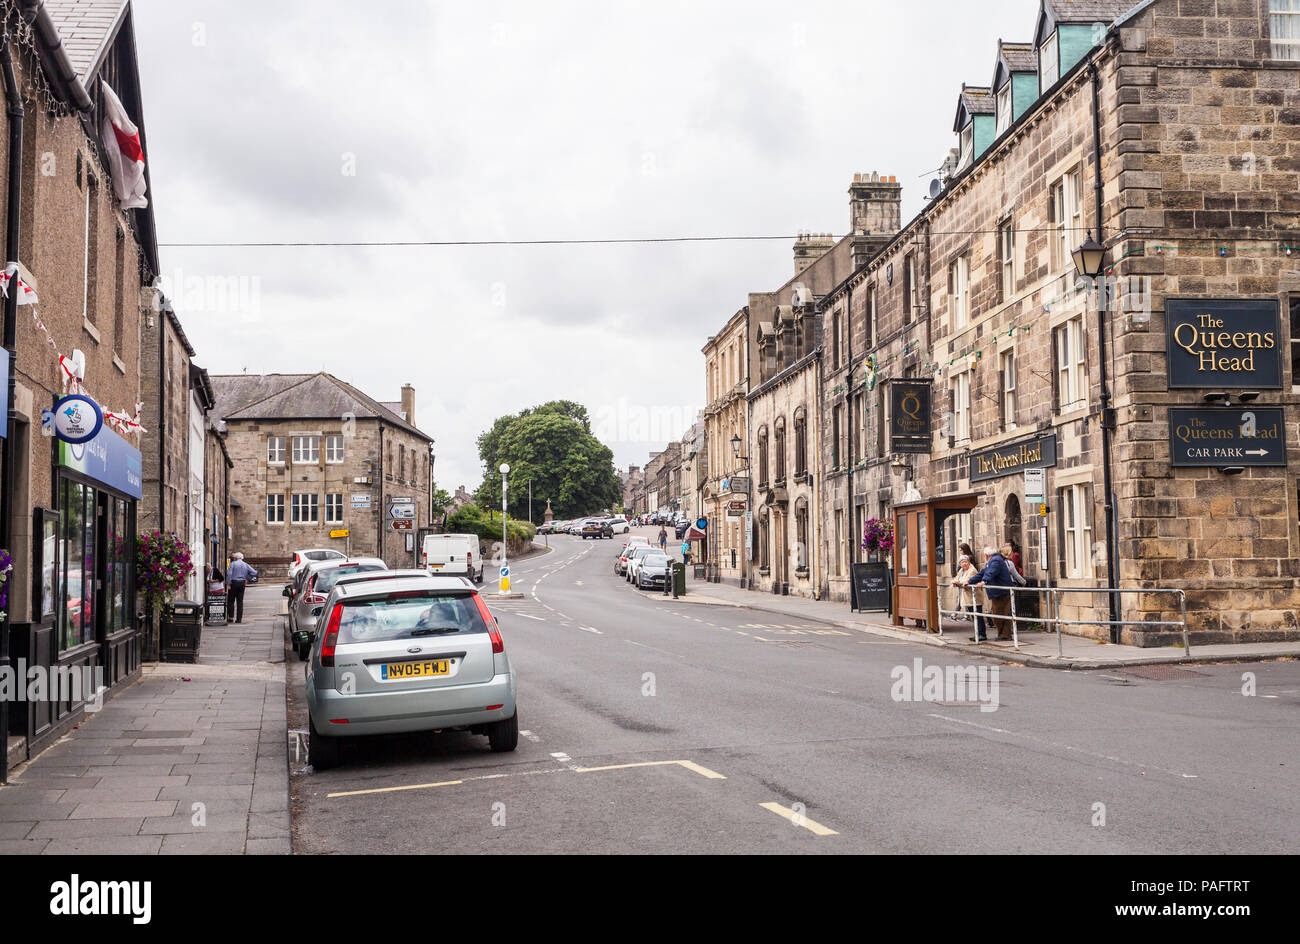 Street scene in Town Foot,Rothbury,Northumberland,England,UK - Stock Image